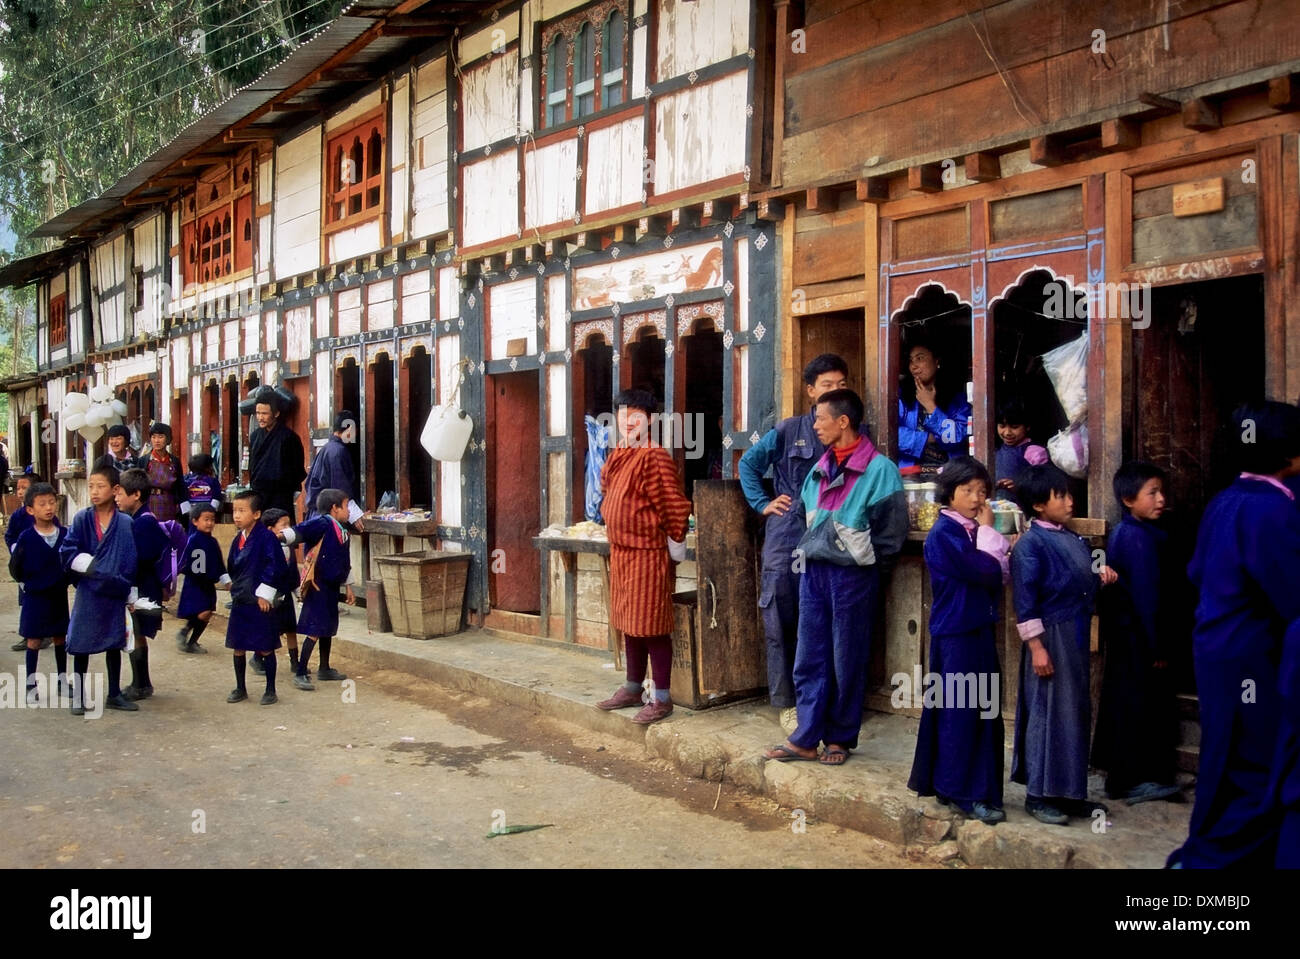 Bhutanese school children and people in national dress in fornt of traditional buildings in Wangde Phodrung, Bhutan. - Stock Image